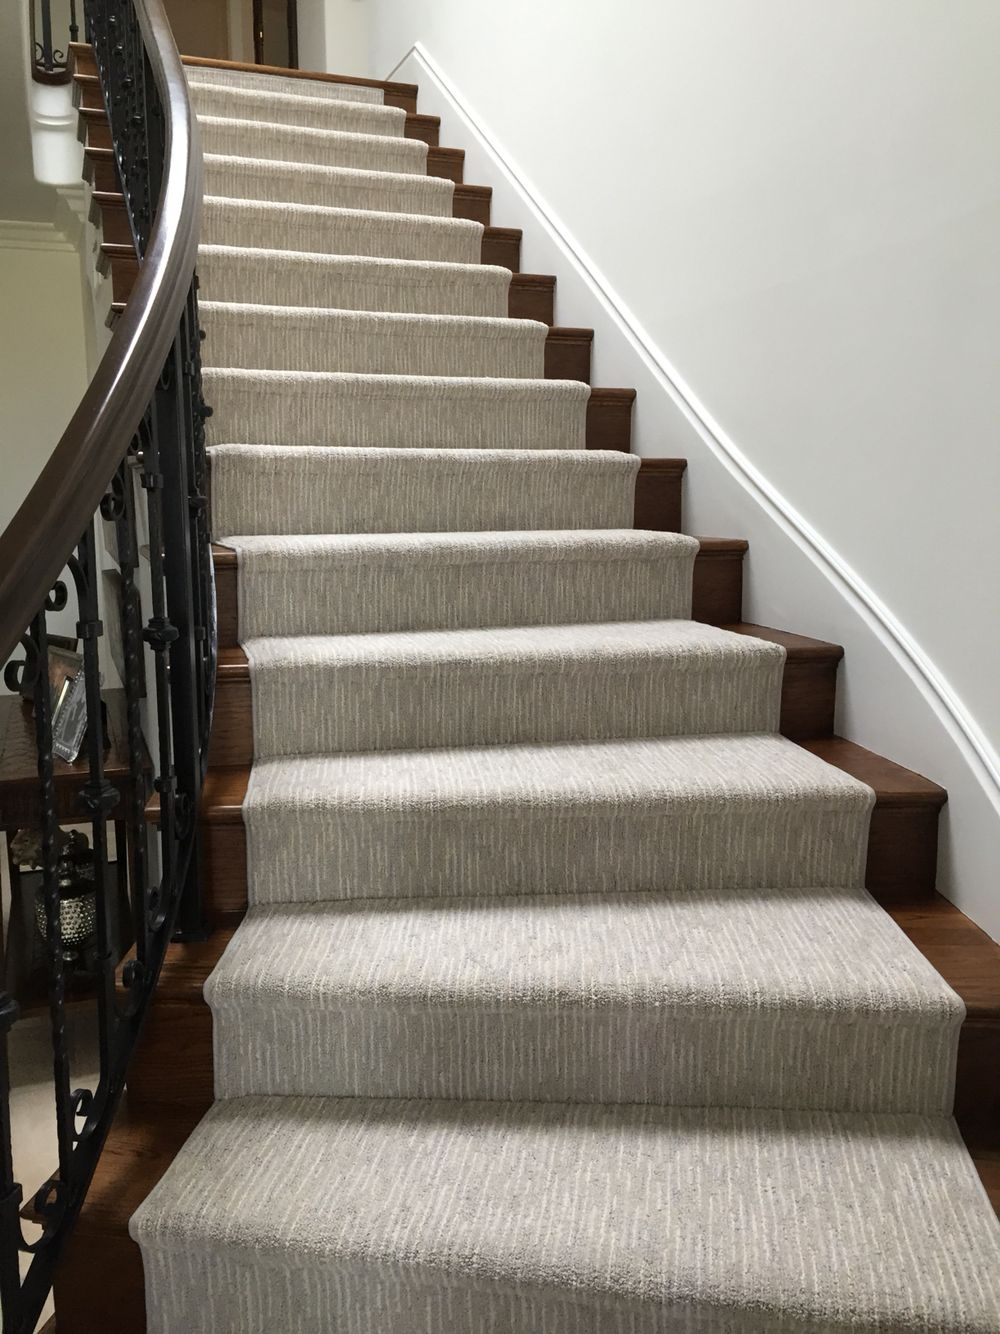 Masland Stainmaster Carpet Fabricated Into A Stair Runner